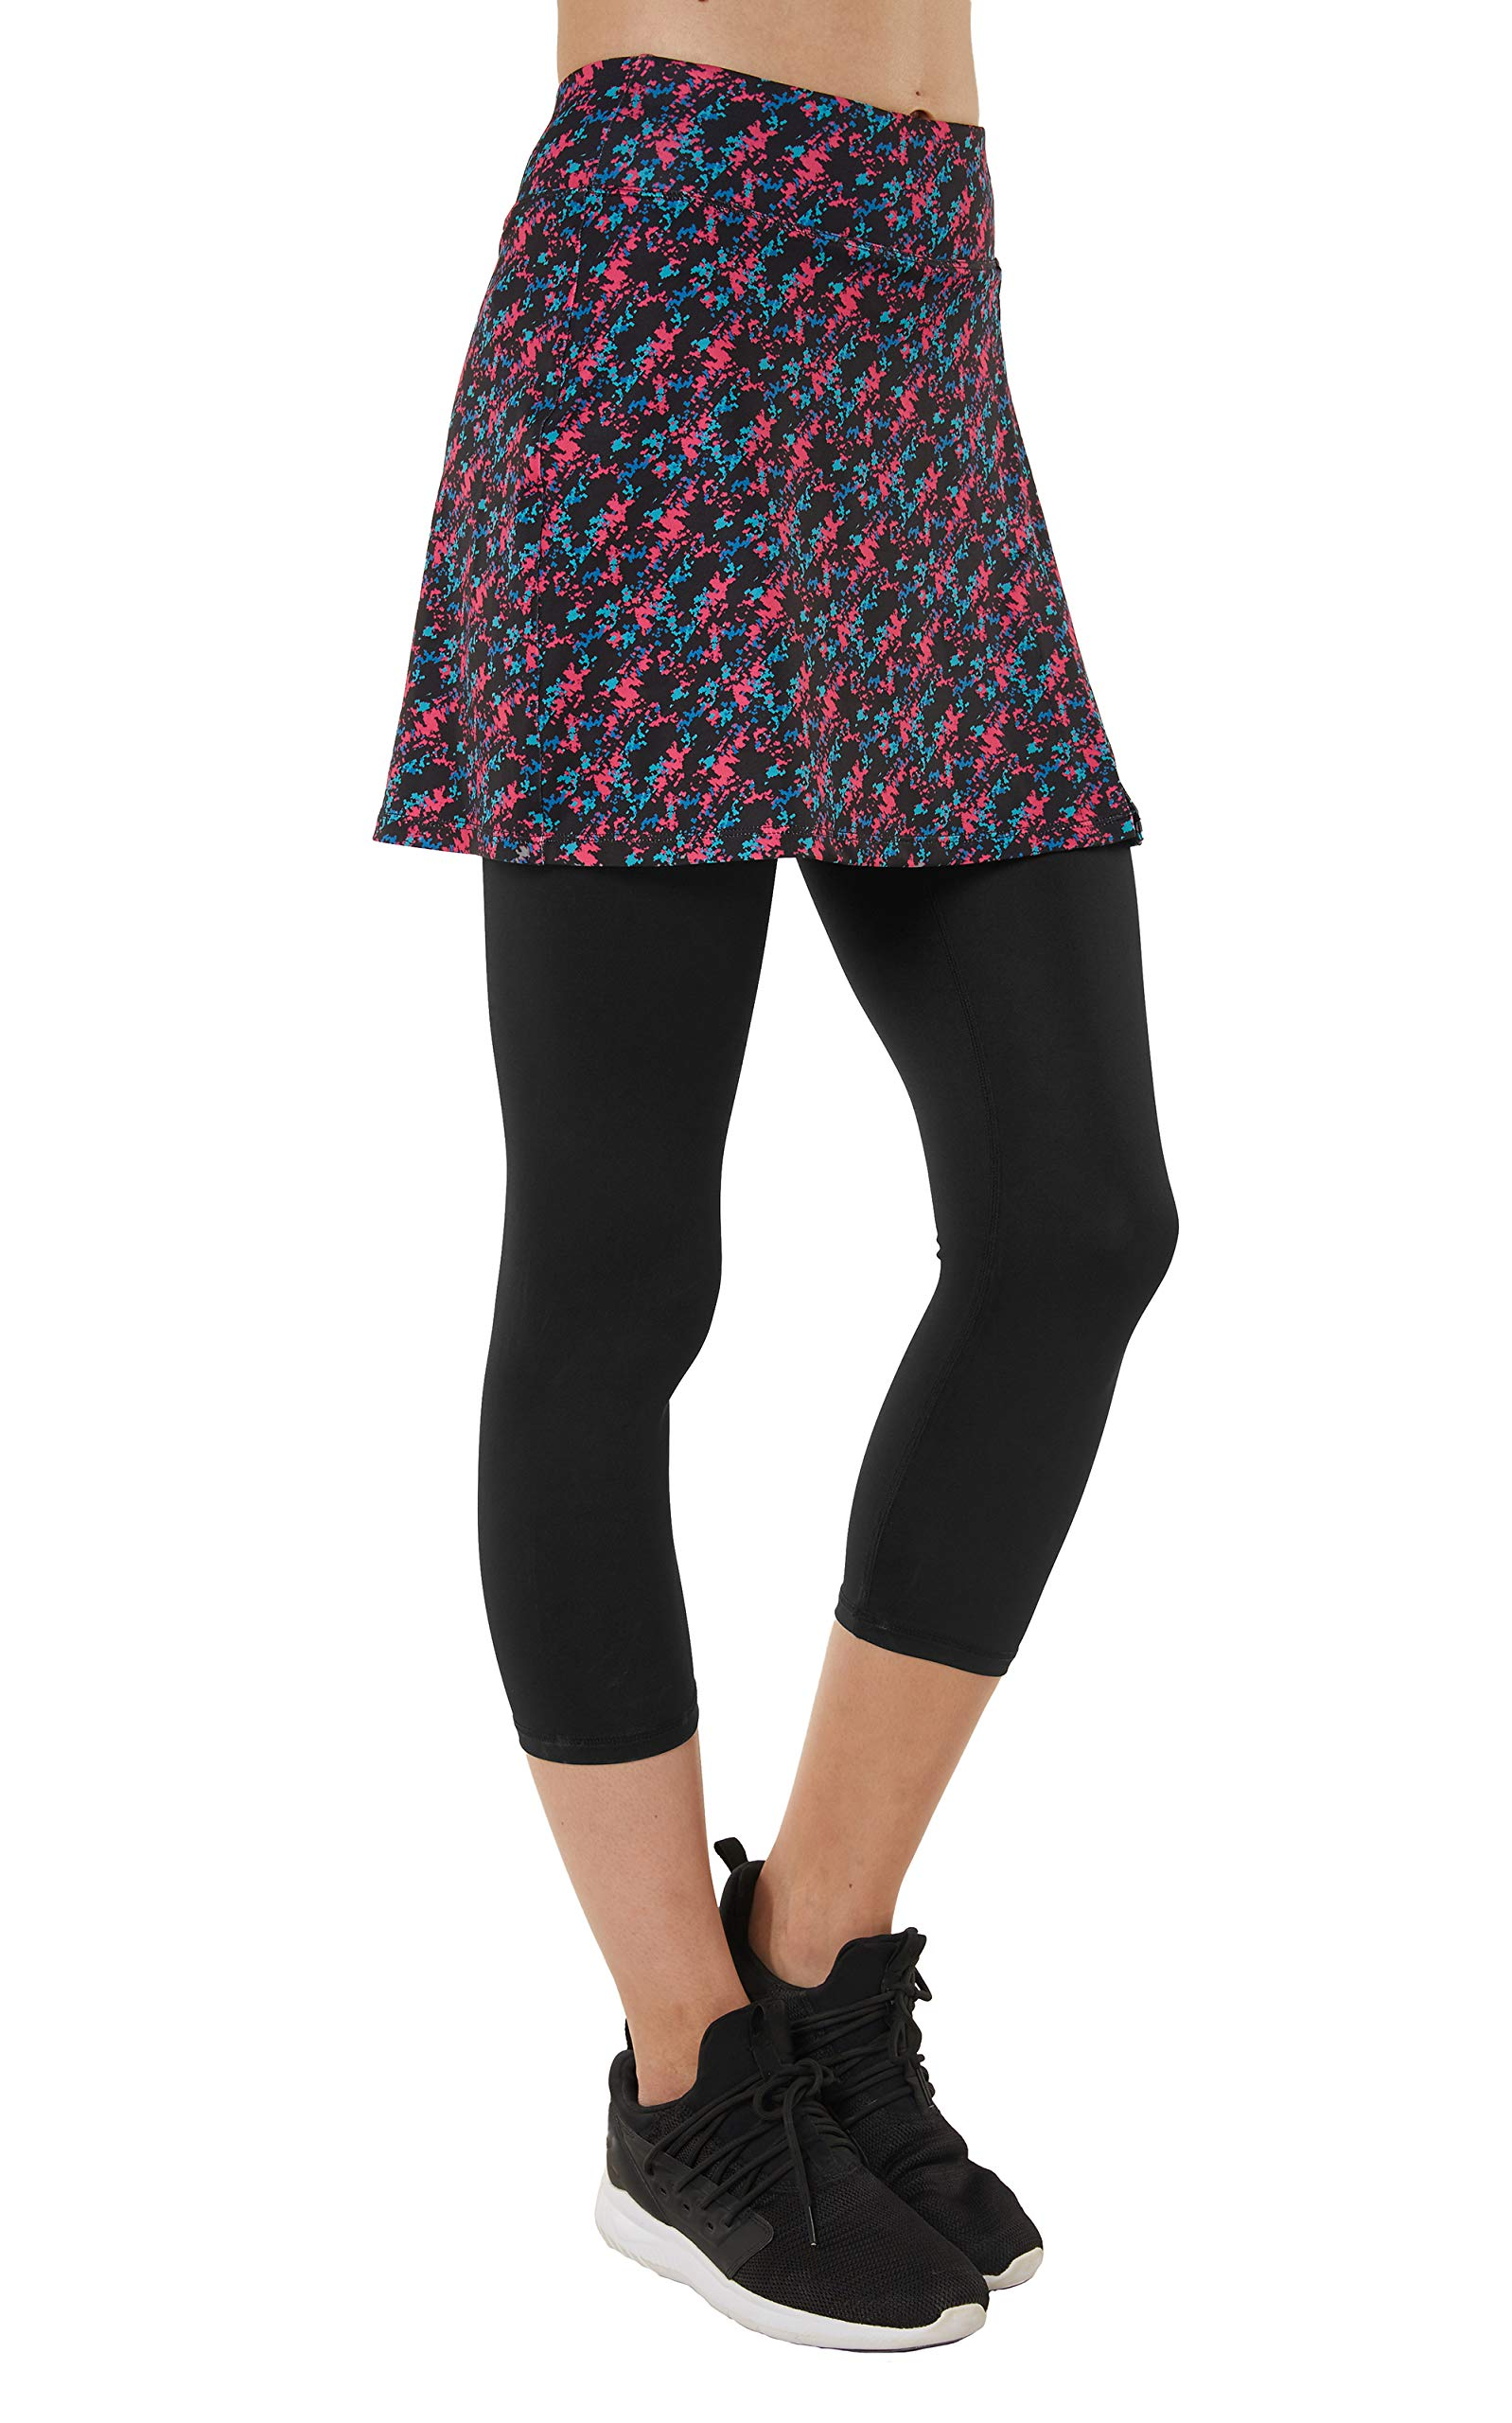 slimour Women Capri Leggings with Skirt Attached Capri Pants Skirted Leggings Workout Mixed M by slimour